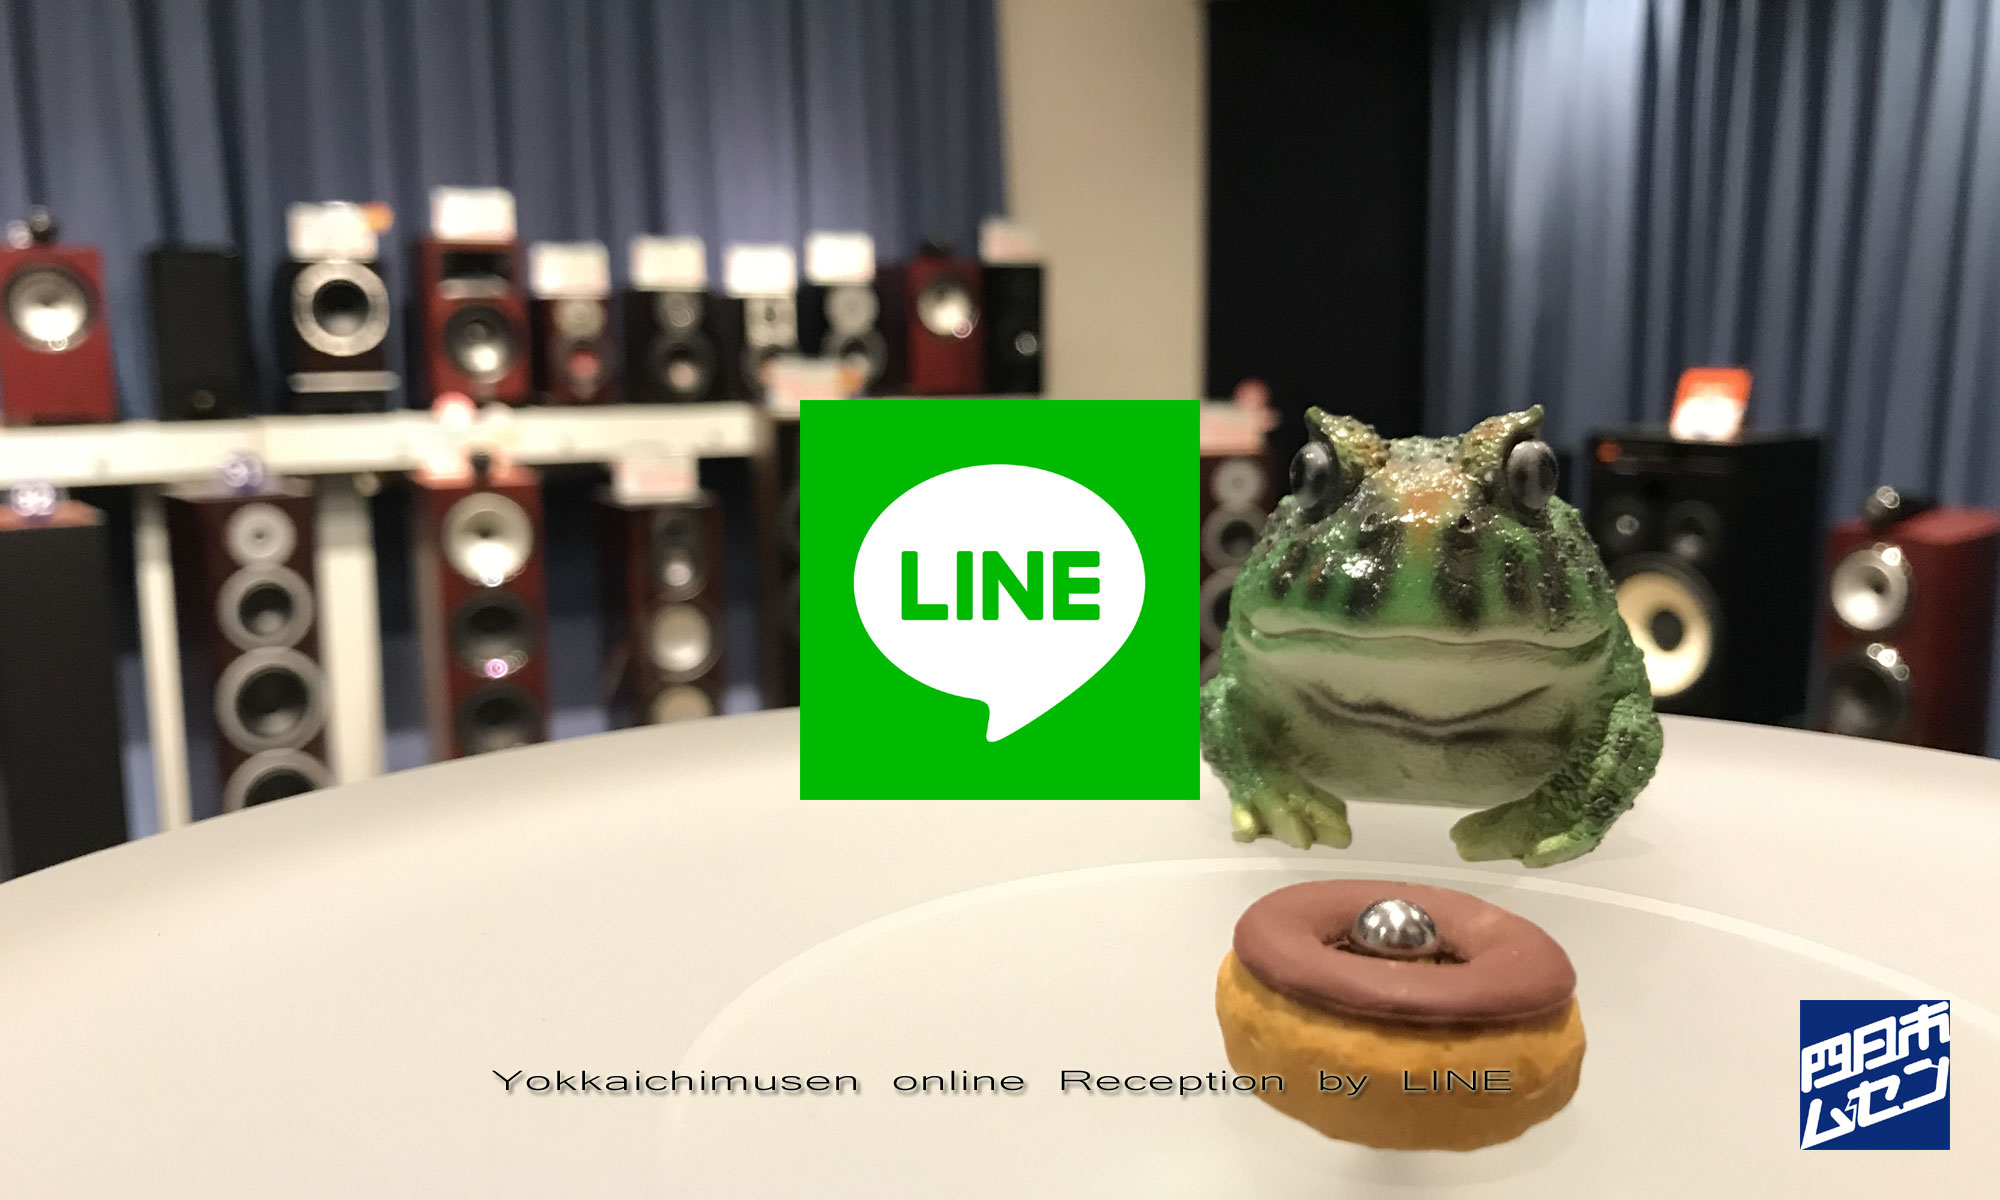 Yokkaichimusen online Reception by LINE